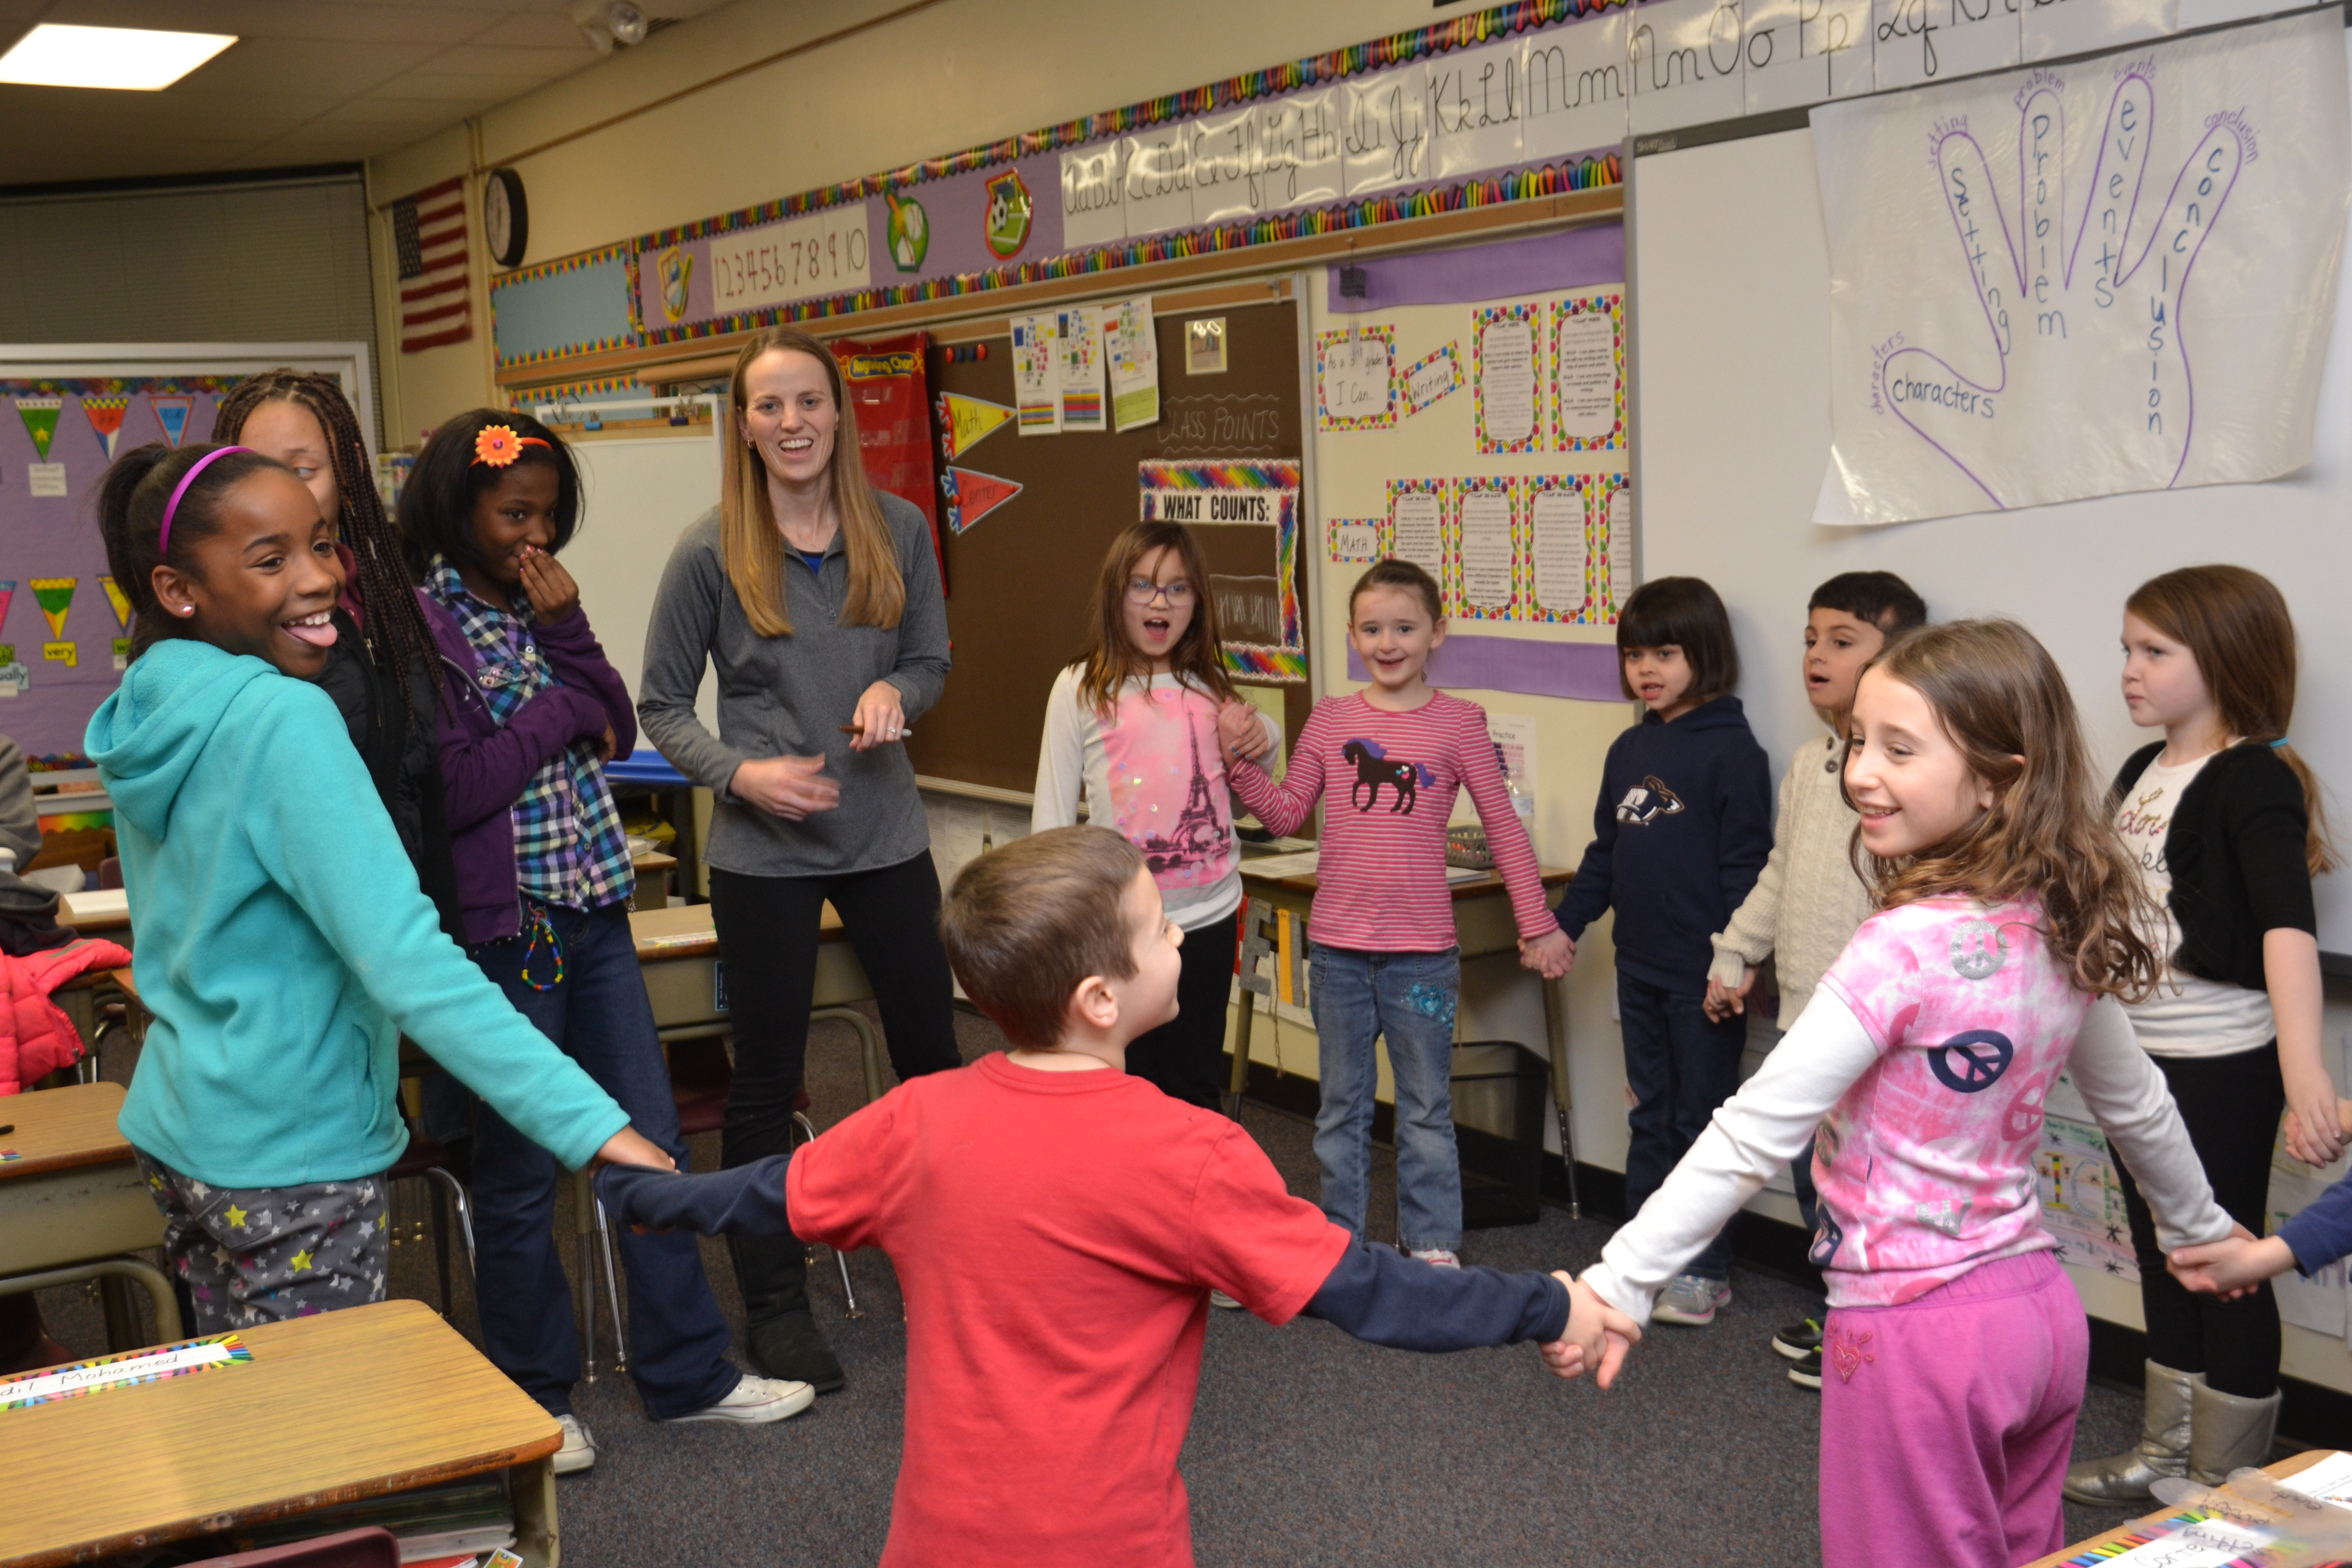 Pointview Family Engagement Night Draws Big Crowd